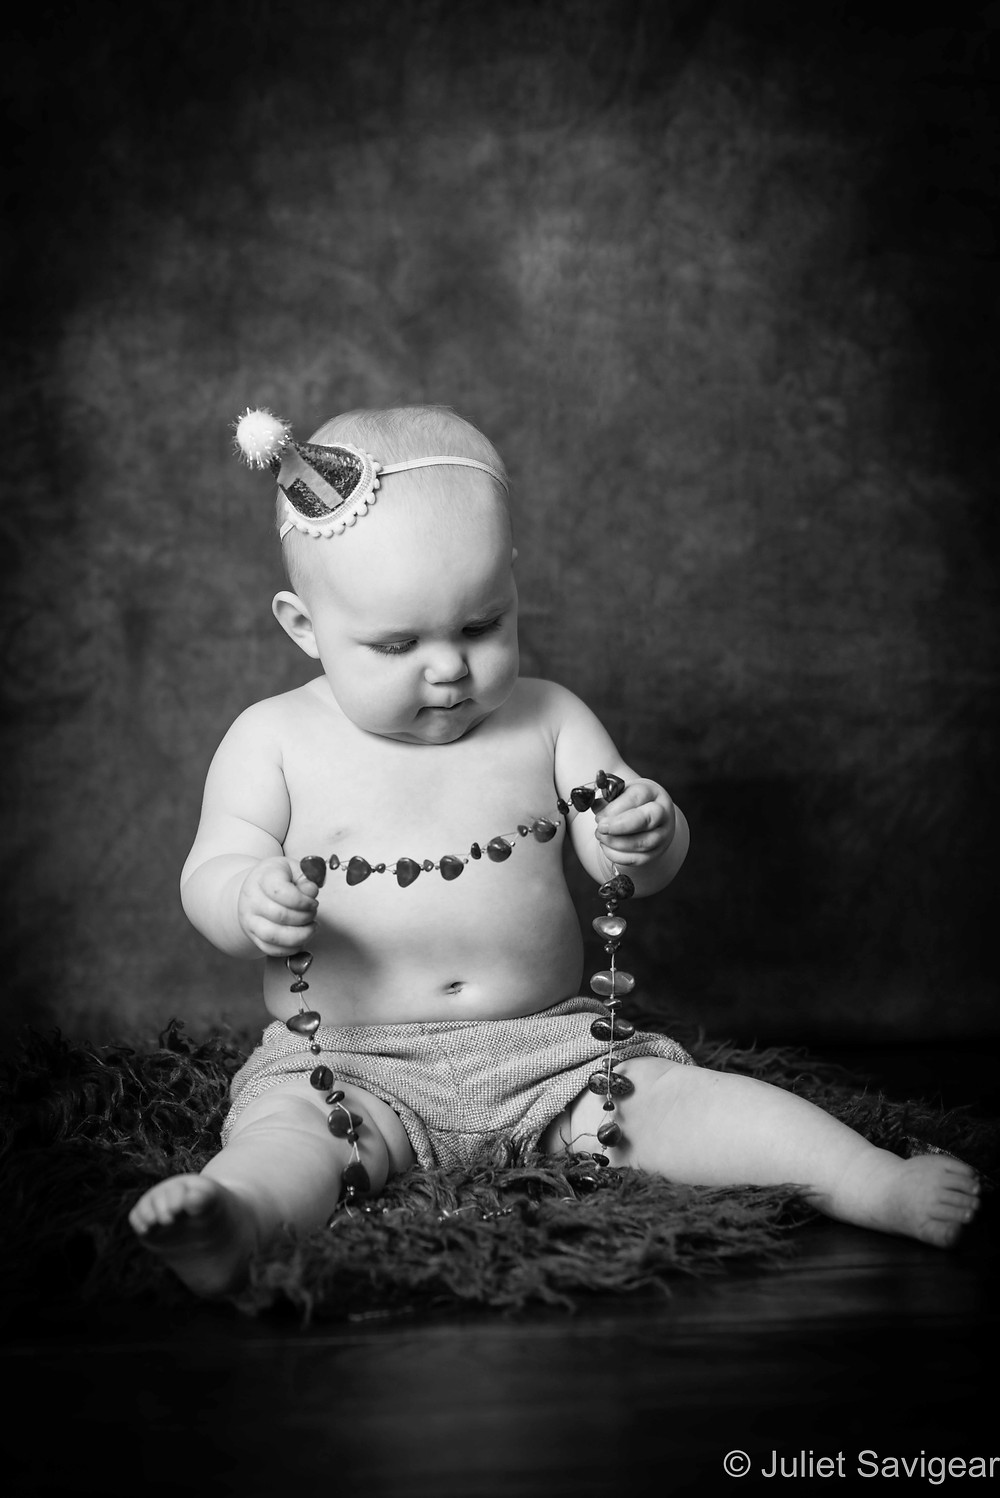 Baby & bead necklace